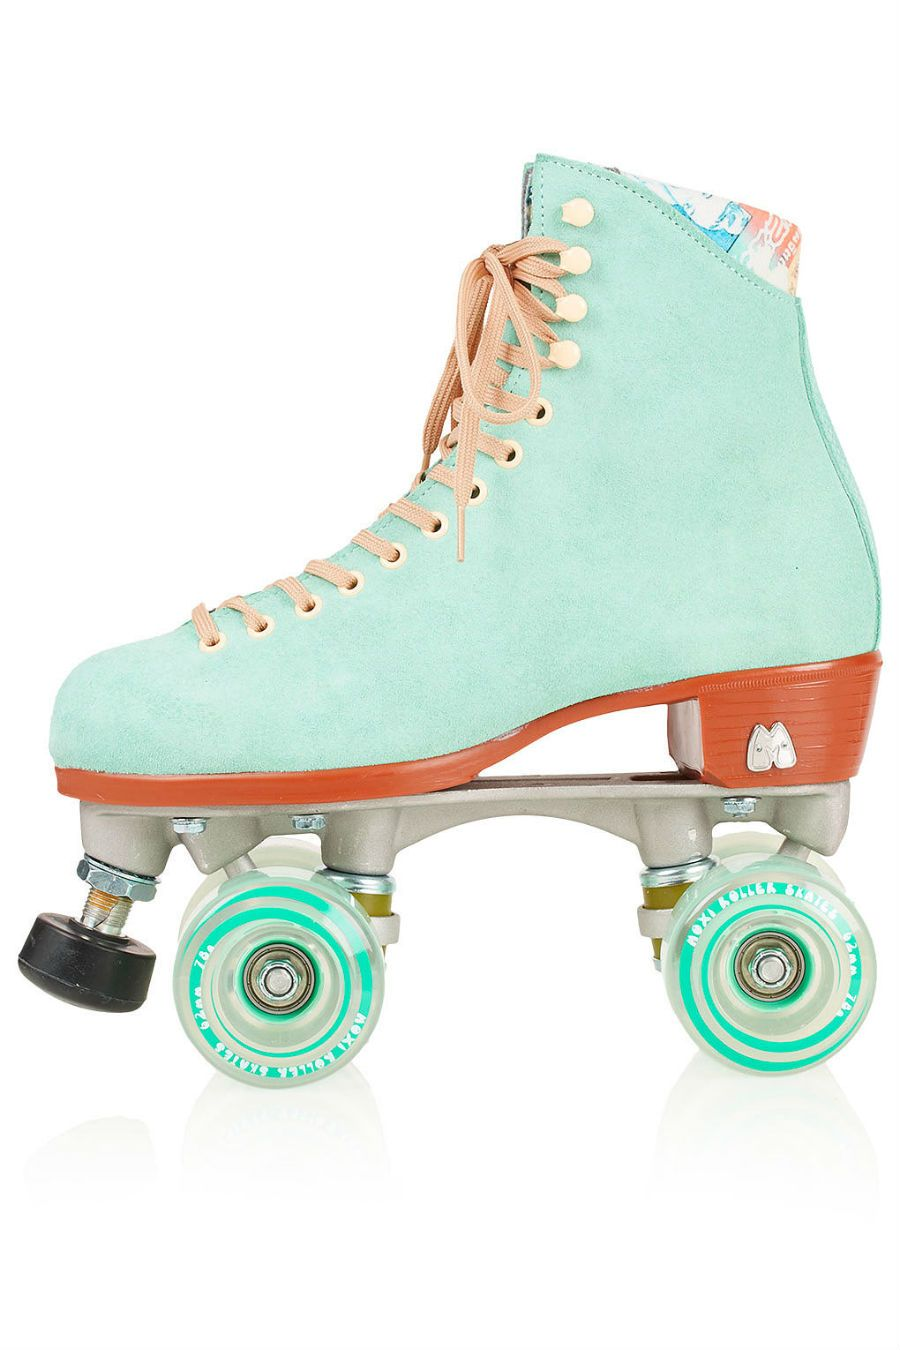 Pin En Patines Guays